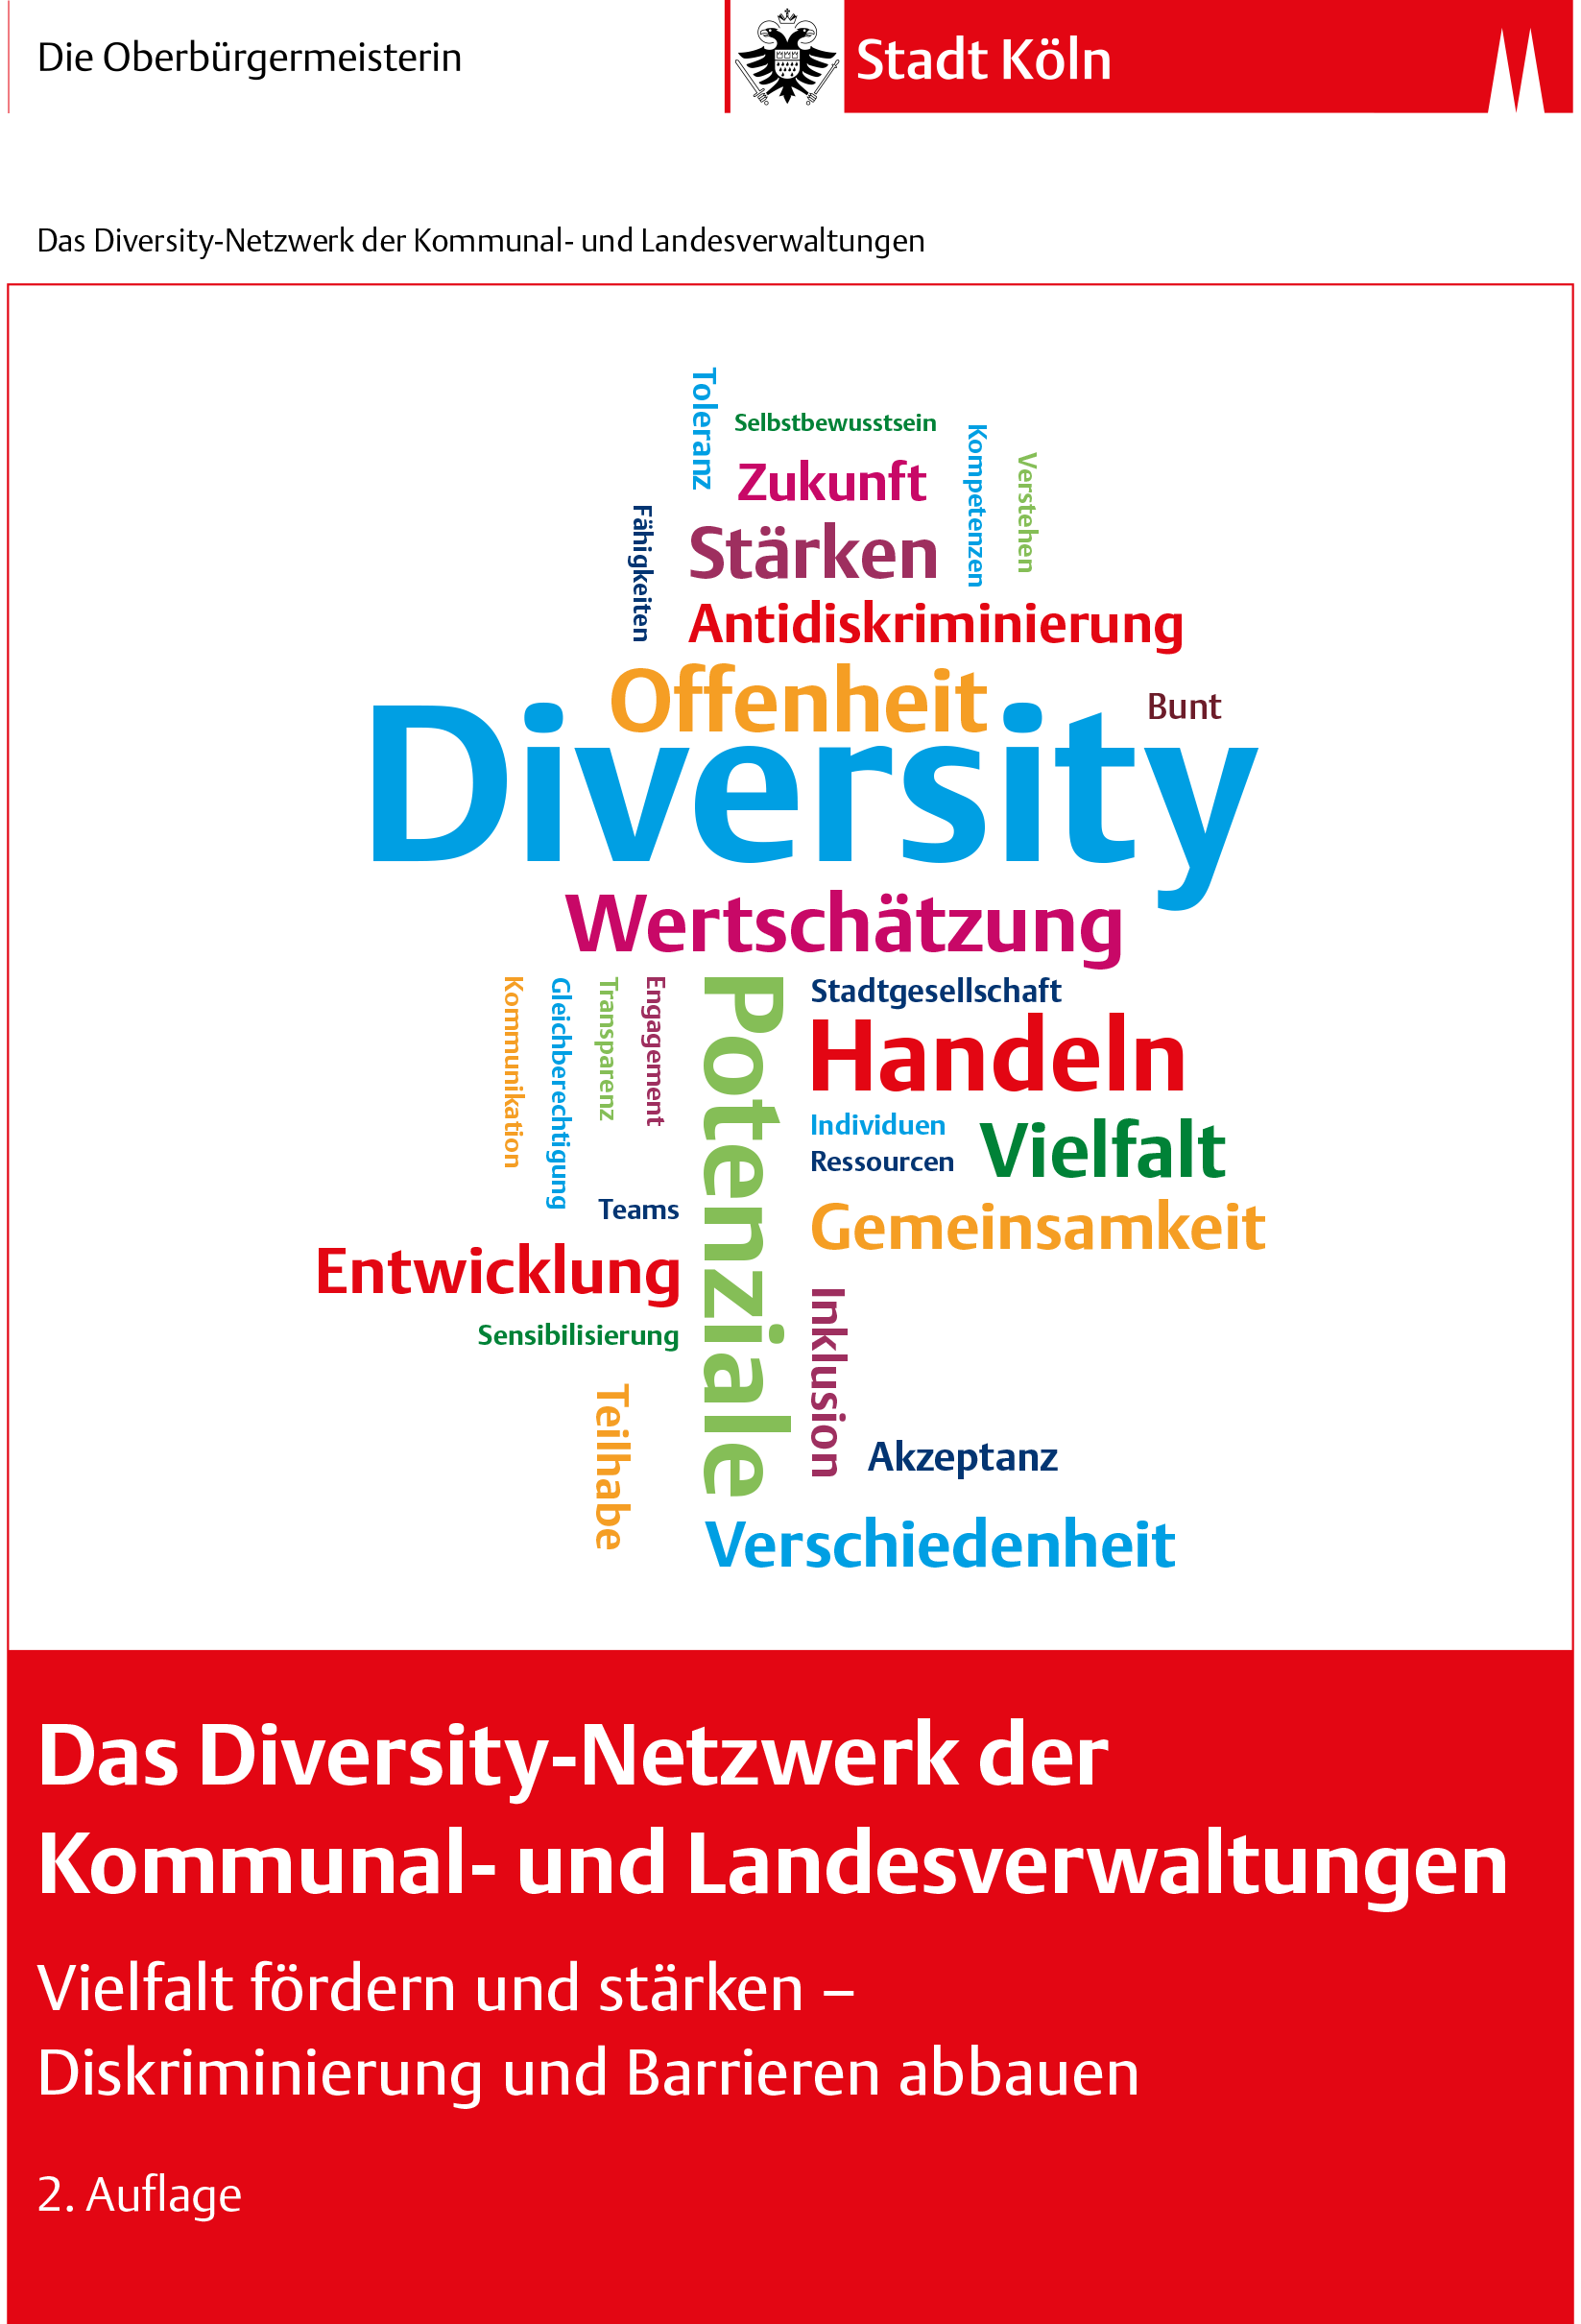 Learning, practicing and living diversity orientation